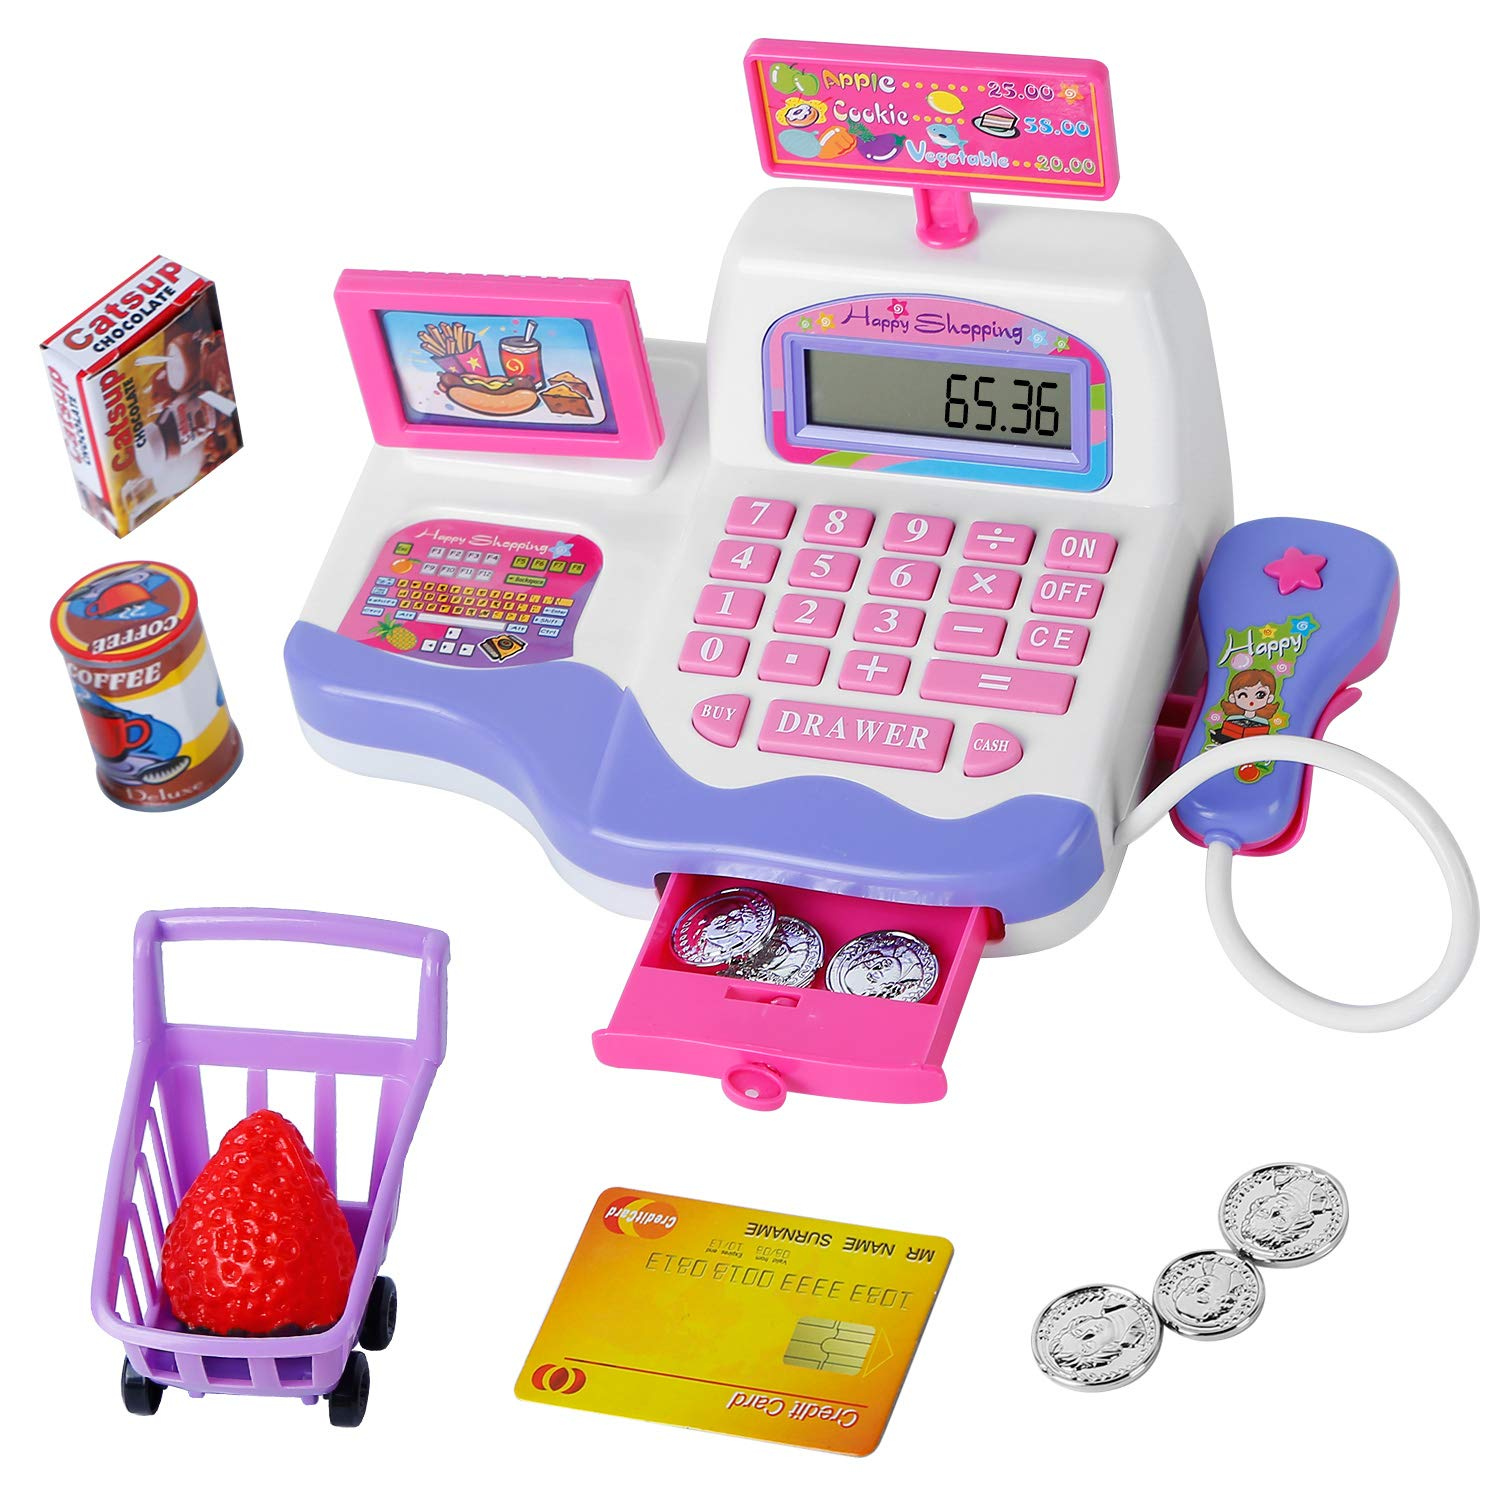 Tudaymol Childrens Cash Register Toys with calculators scanners Food Pretending Credit Cards